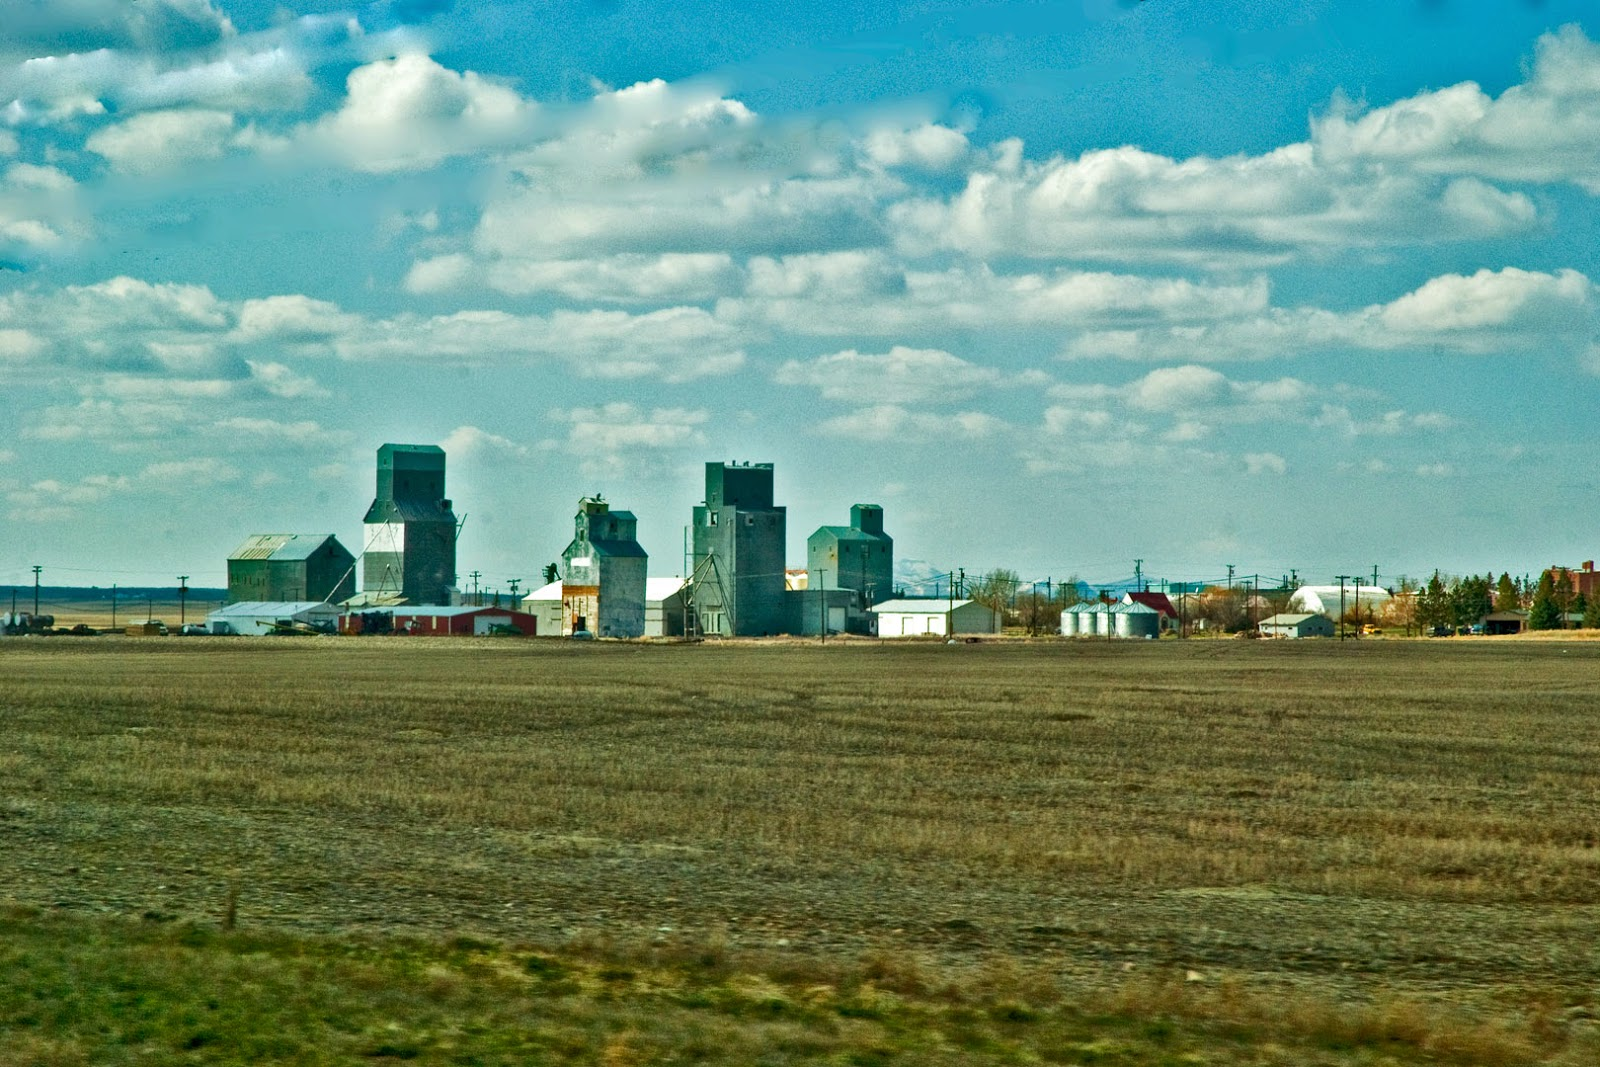 Montana prairie county mildred - Joplin Montana From Us Highway 2